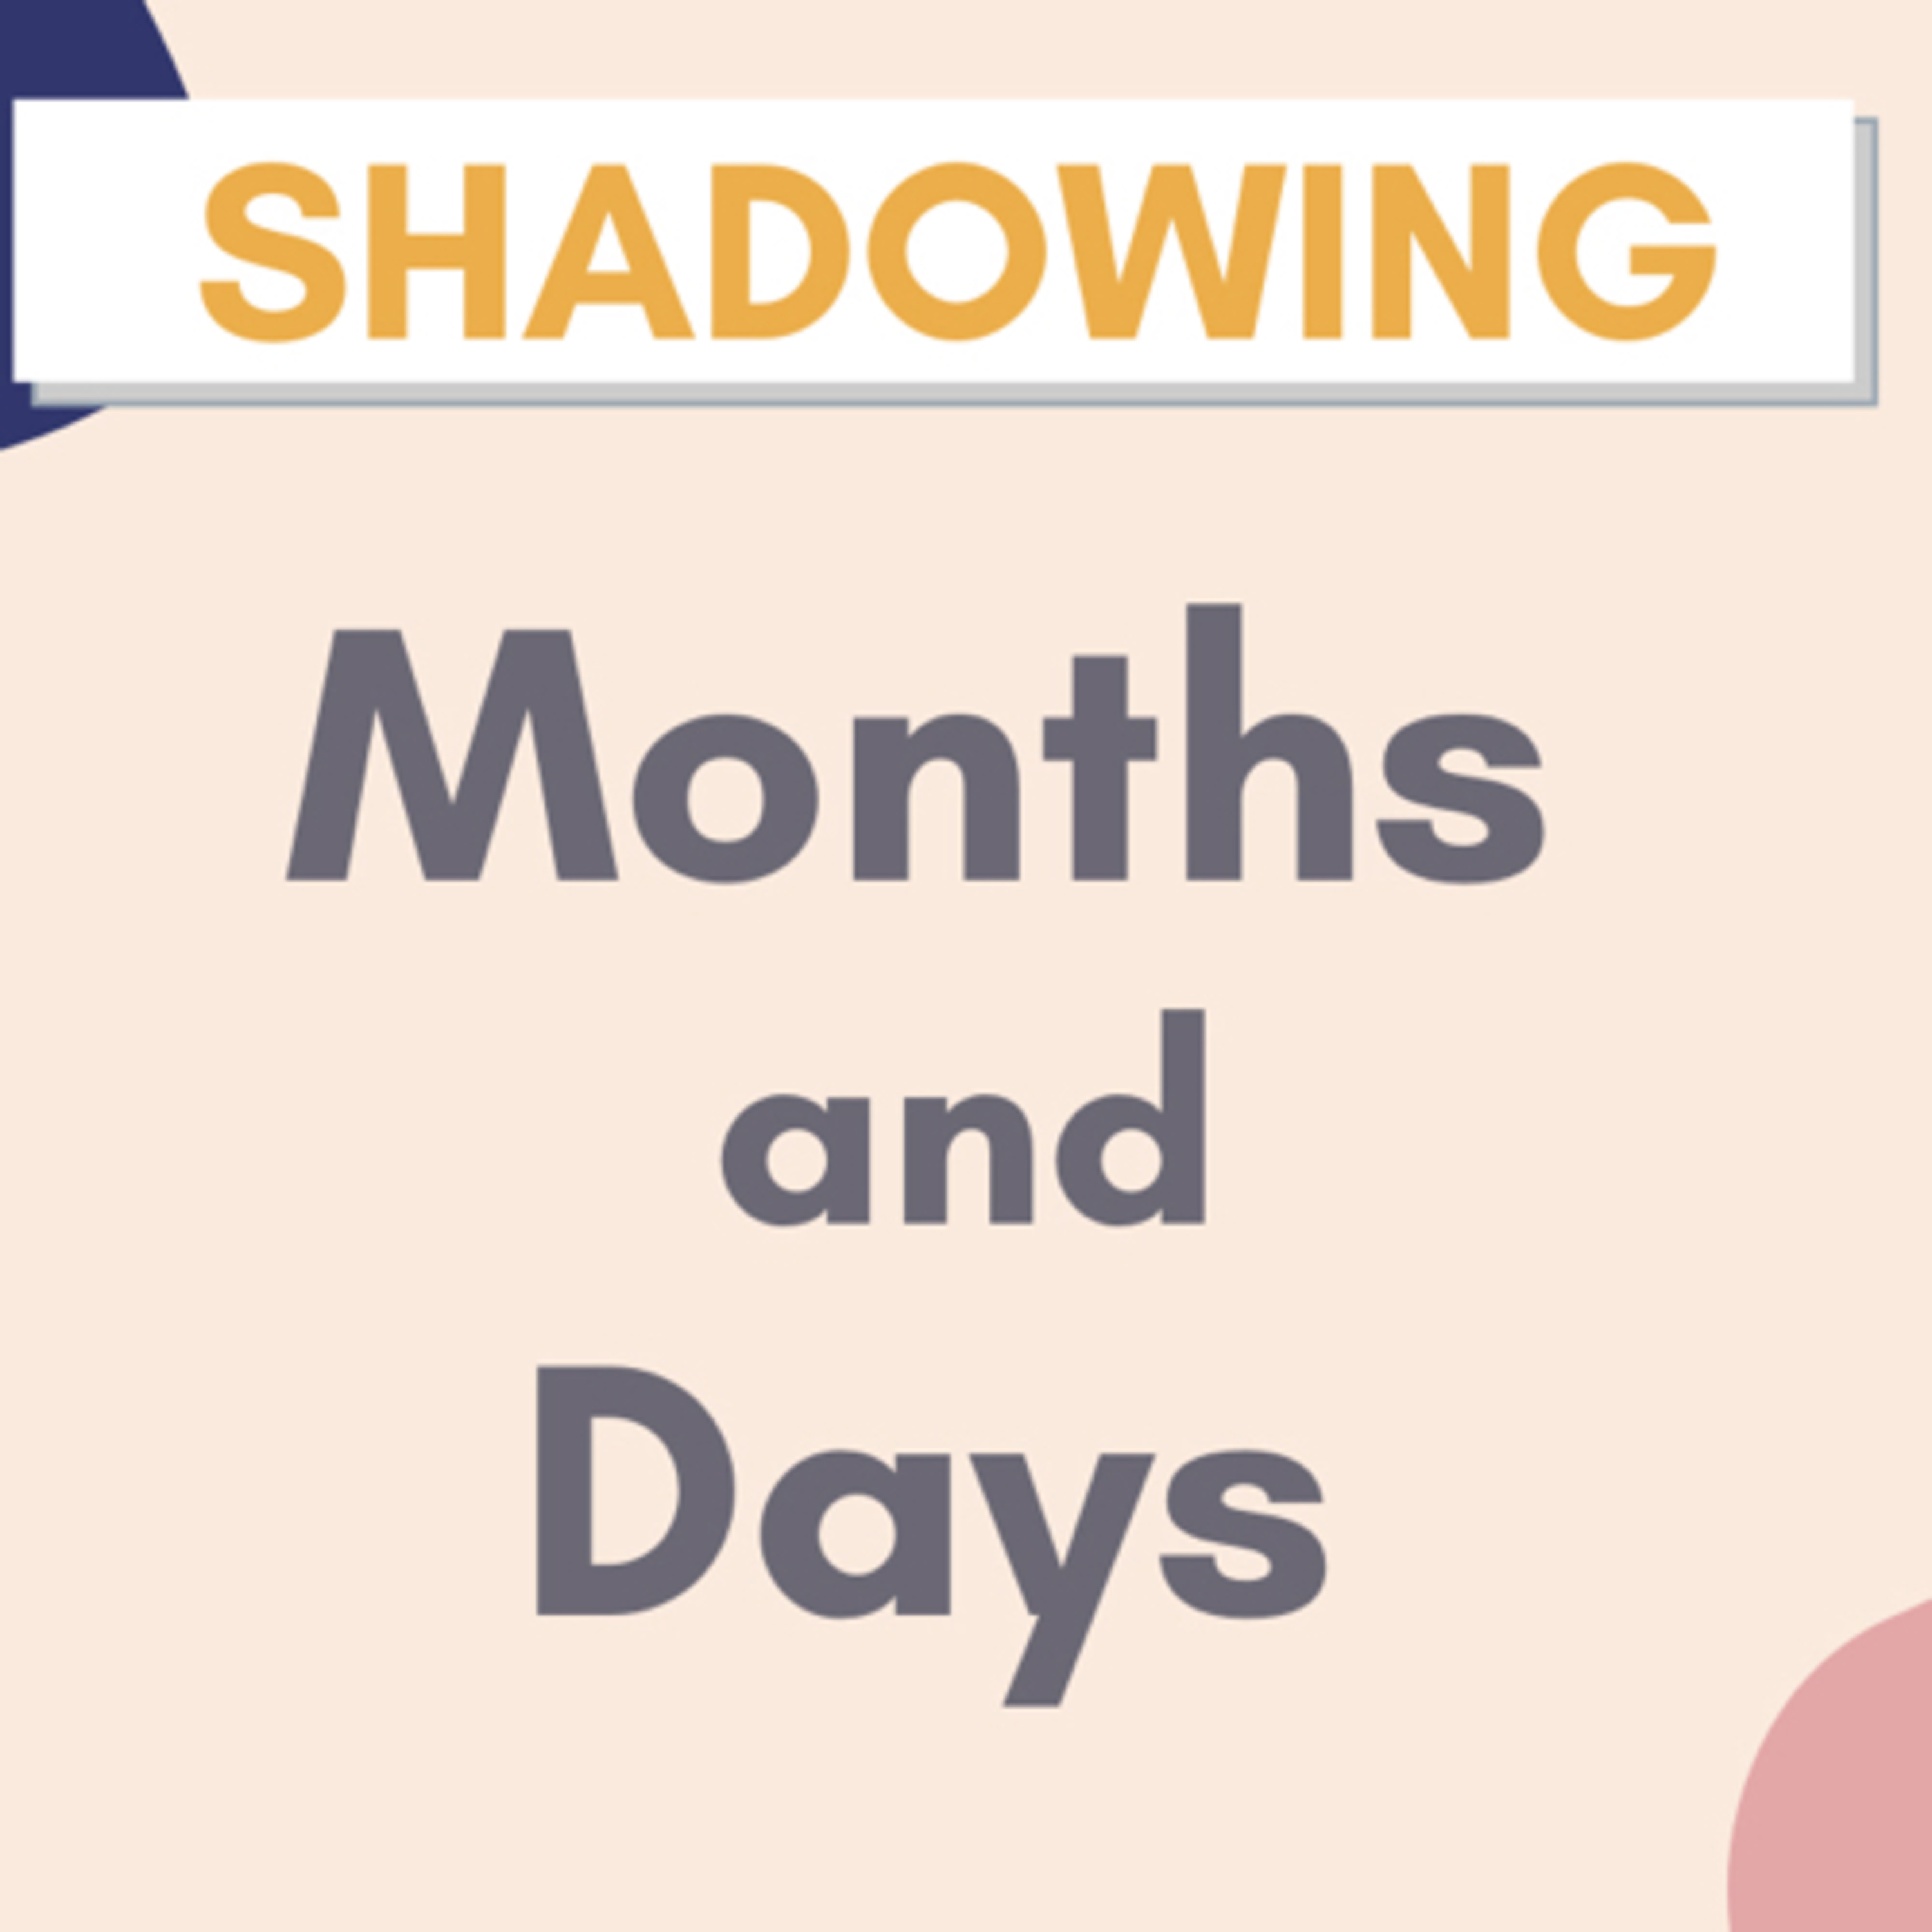 【Shadowing】Months, Days and Days of Week in Japanese